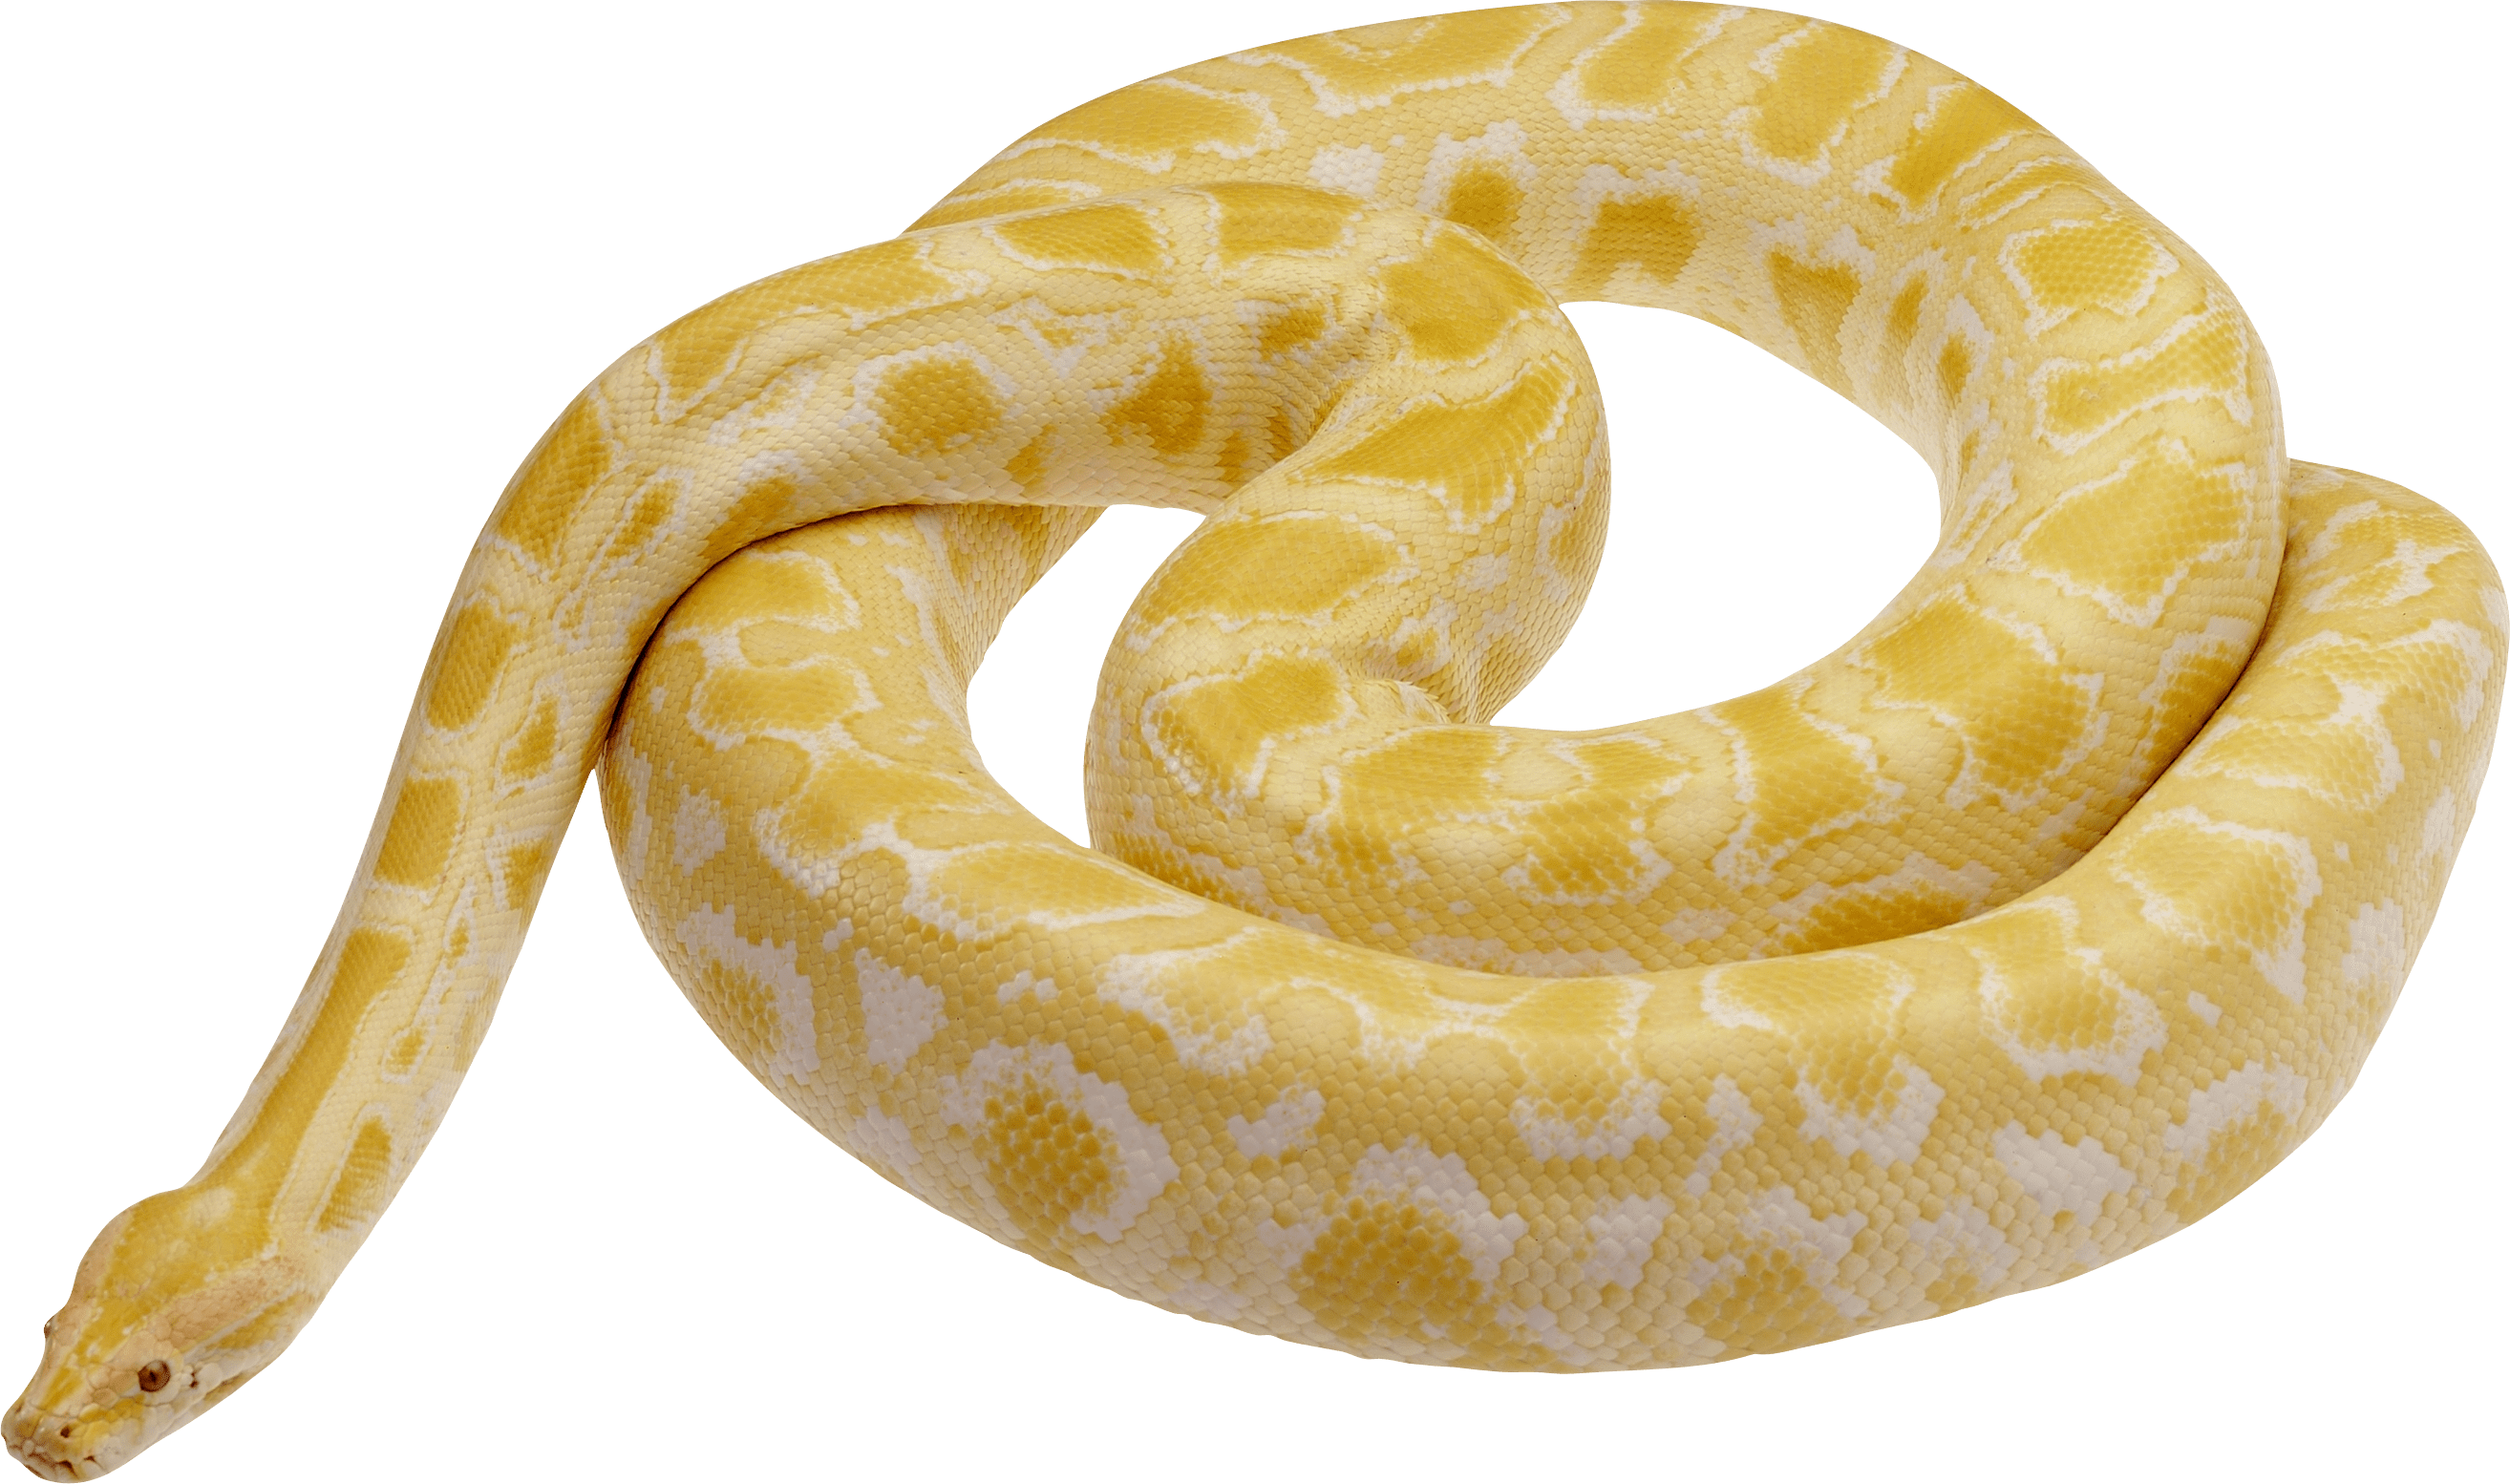 Snake Png Image, Free Download Png Picture Snakes